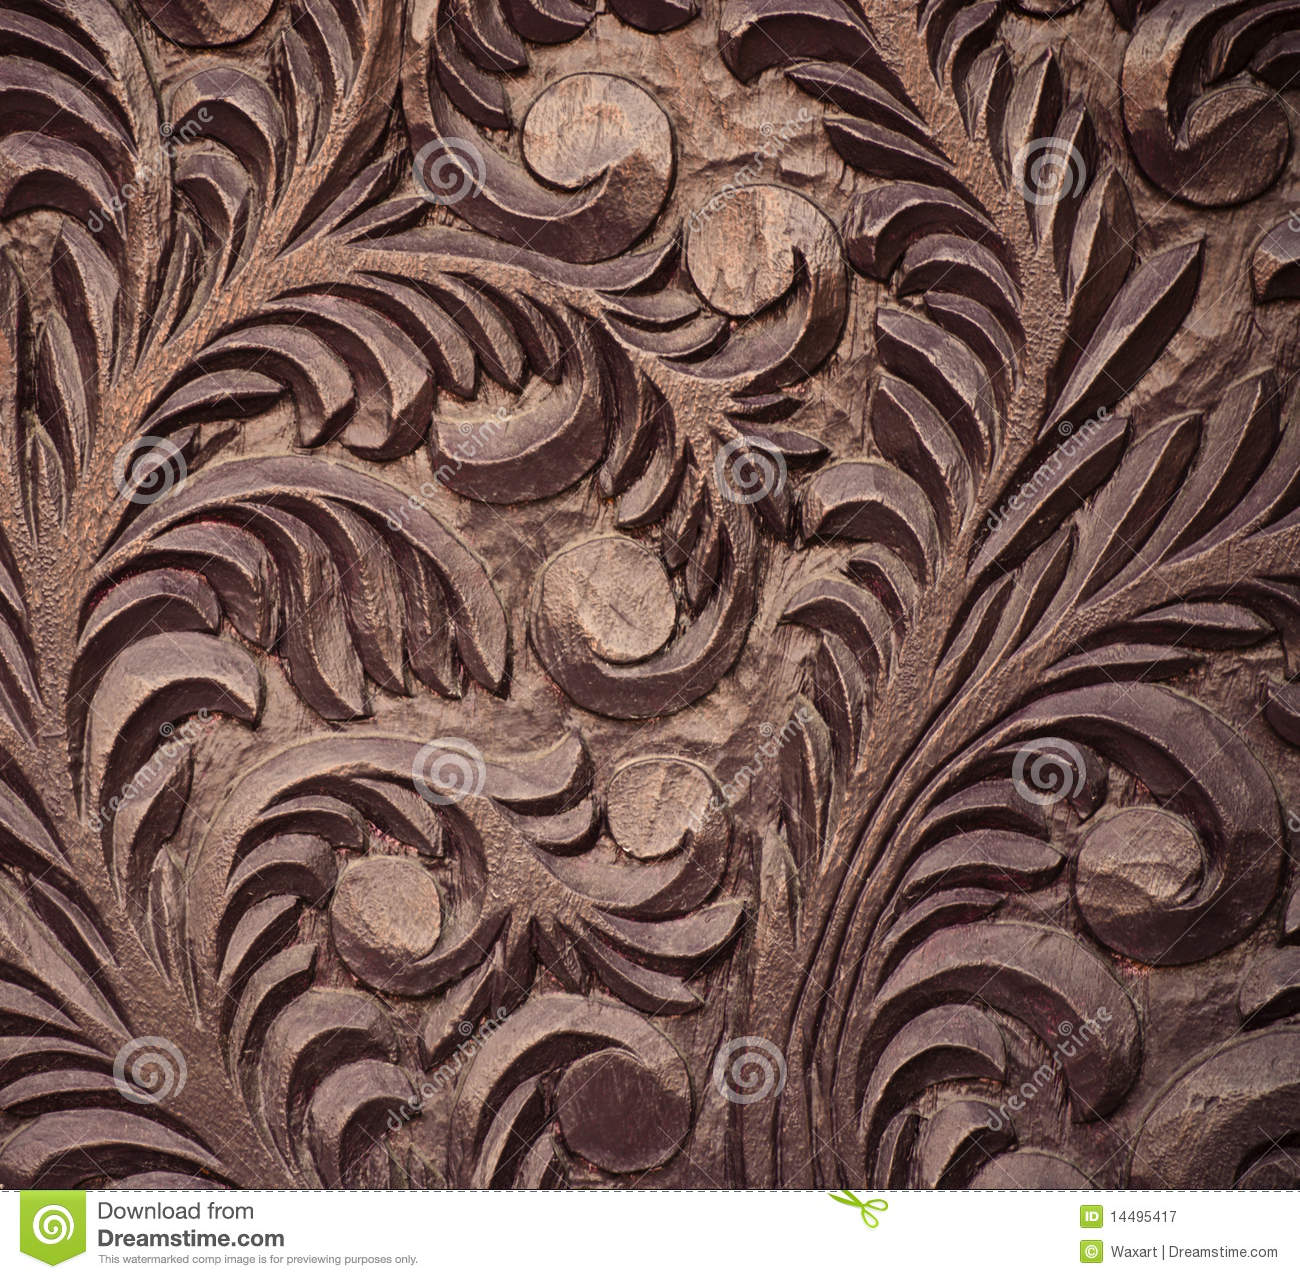 Brown wooden door with pattern of leaves and swirls in high relief